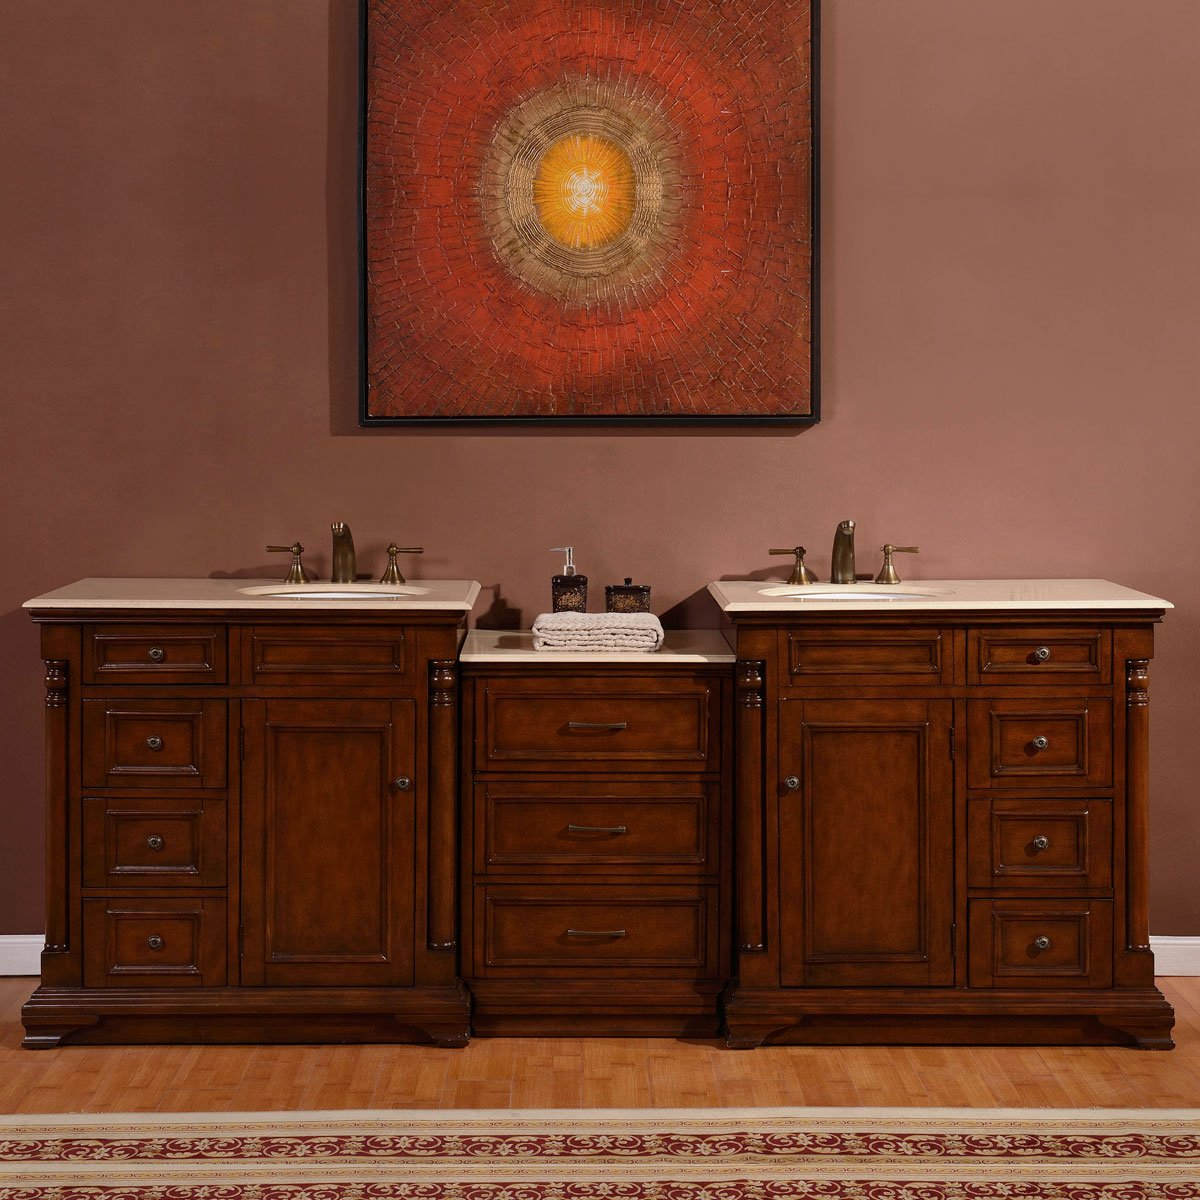 Silkroad Exclusive Marble Stone Top Dual Sink Bathroom Vanity with double Cabinet, 92.5-Inch